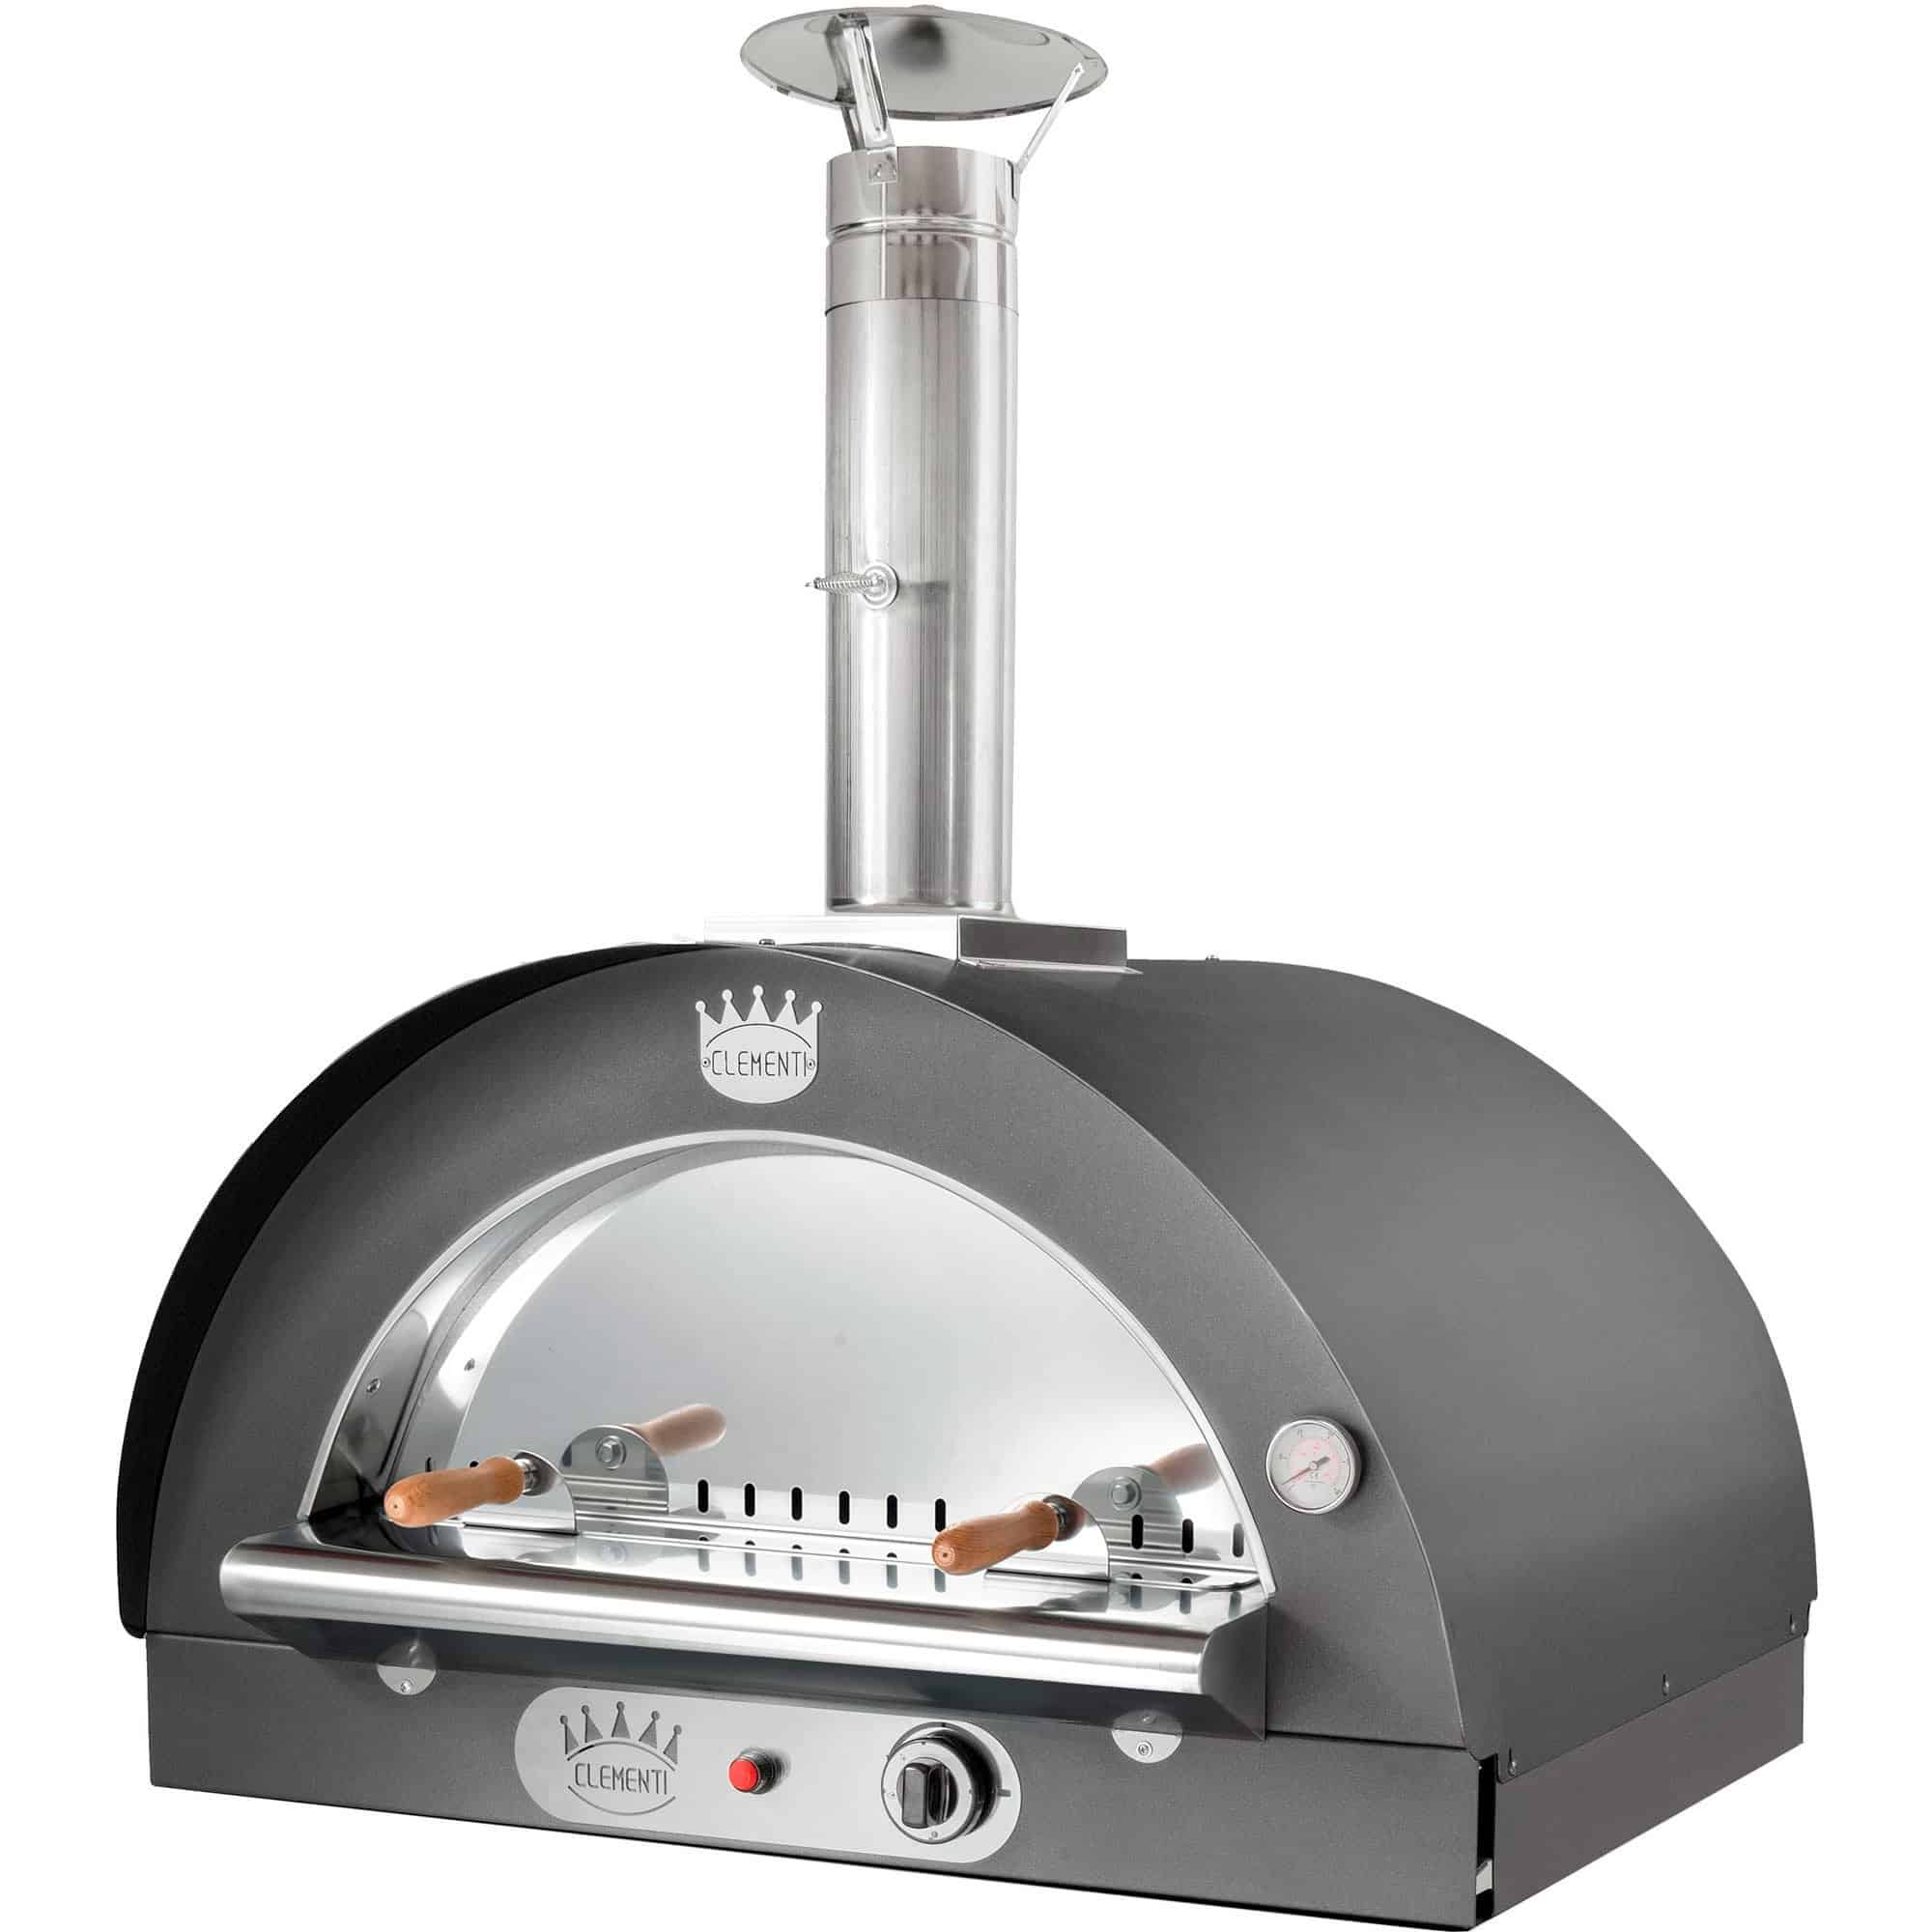 Clementi Family Gas Pizzaovn test